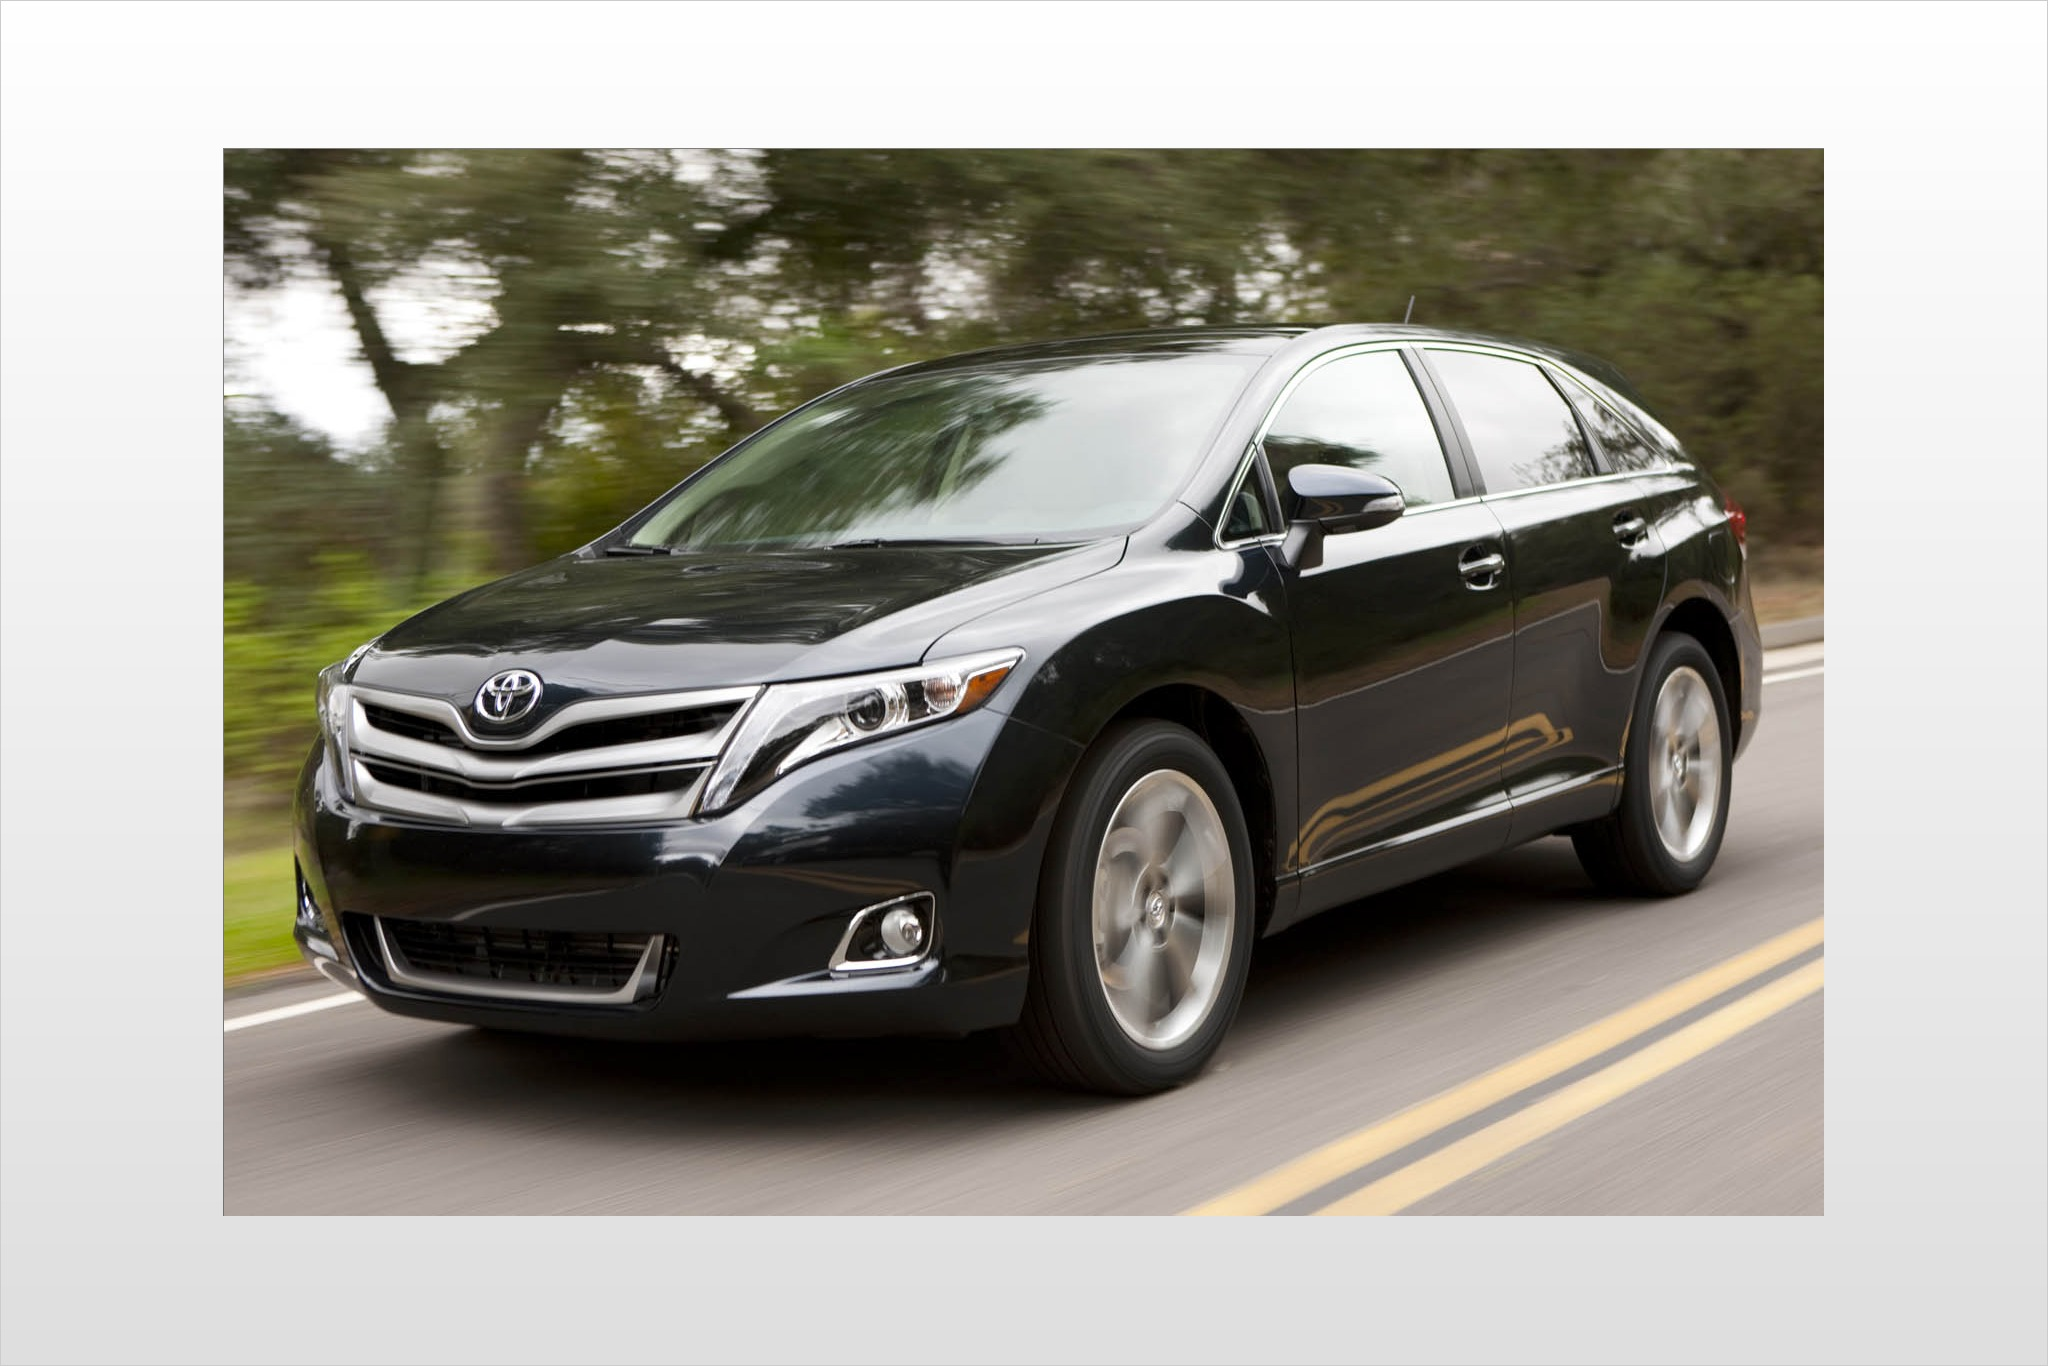 2013 Toyota Venza Limited exterior #7